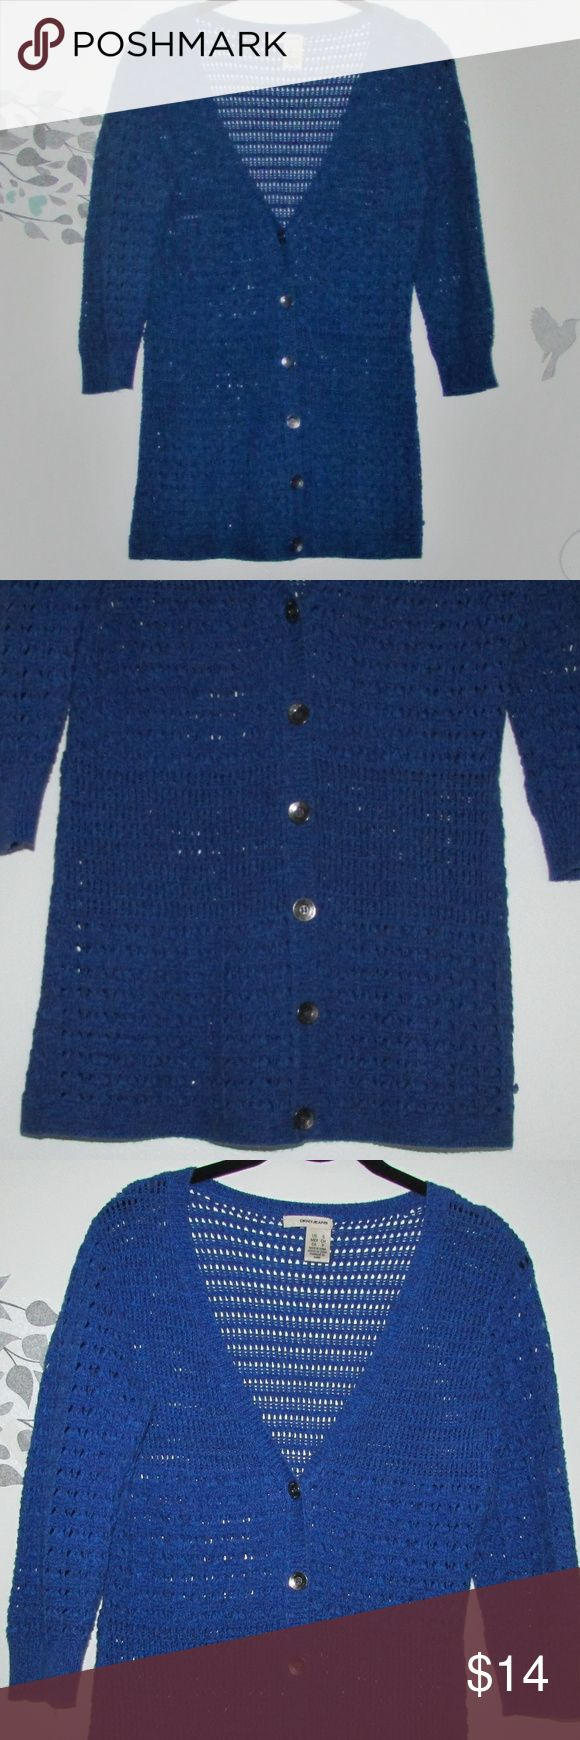 DKNY Open Knit Sweater. Button Front. Beautiful open knit sweater. Like new. DKNY Sweaters Cardigans